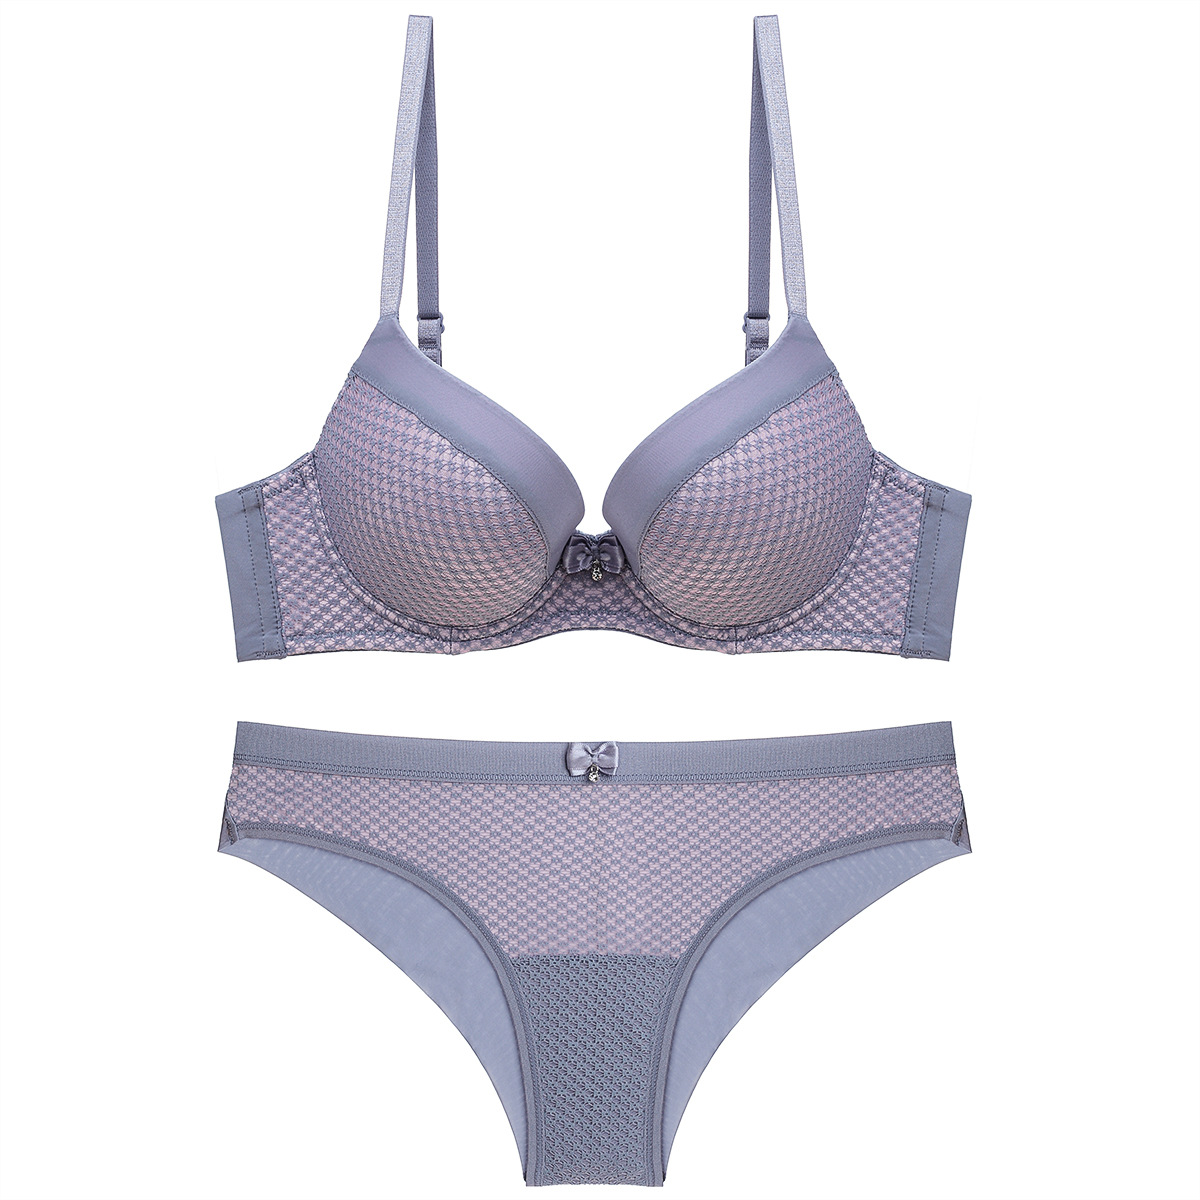 Women Padded Bra Set 3/4 Cup Houndstooth Pattern Underwired Push Up Padded Bra And Panties For Women Lingerie